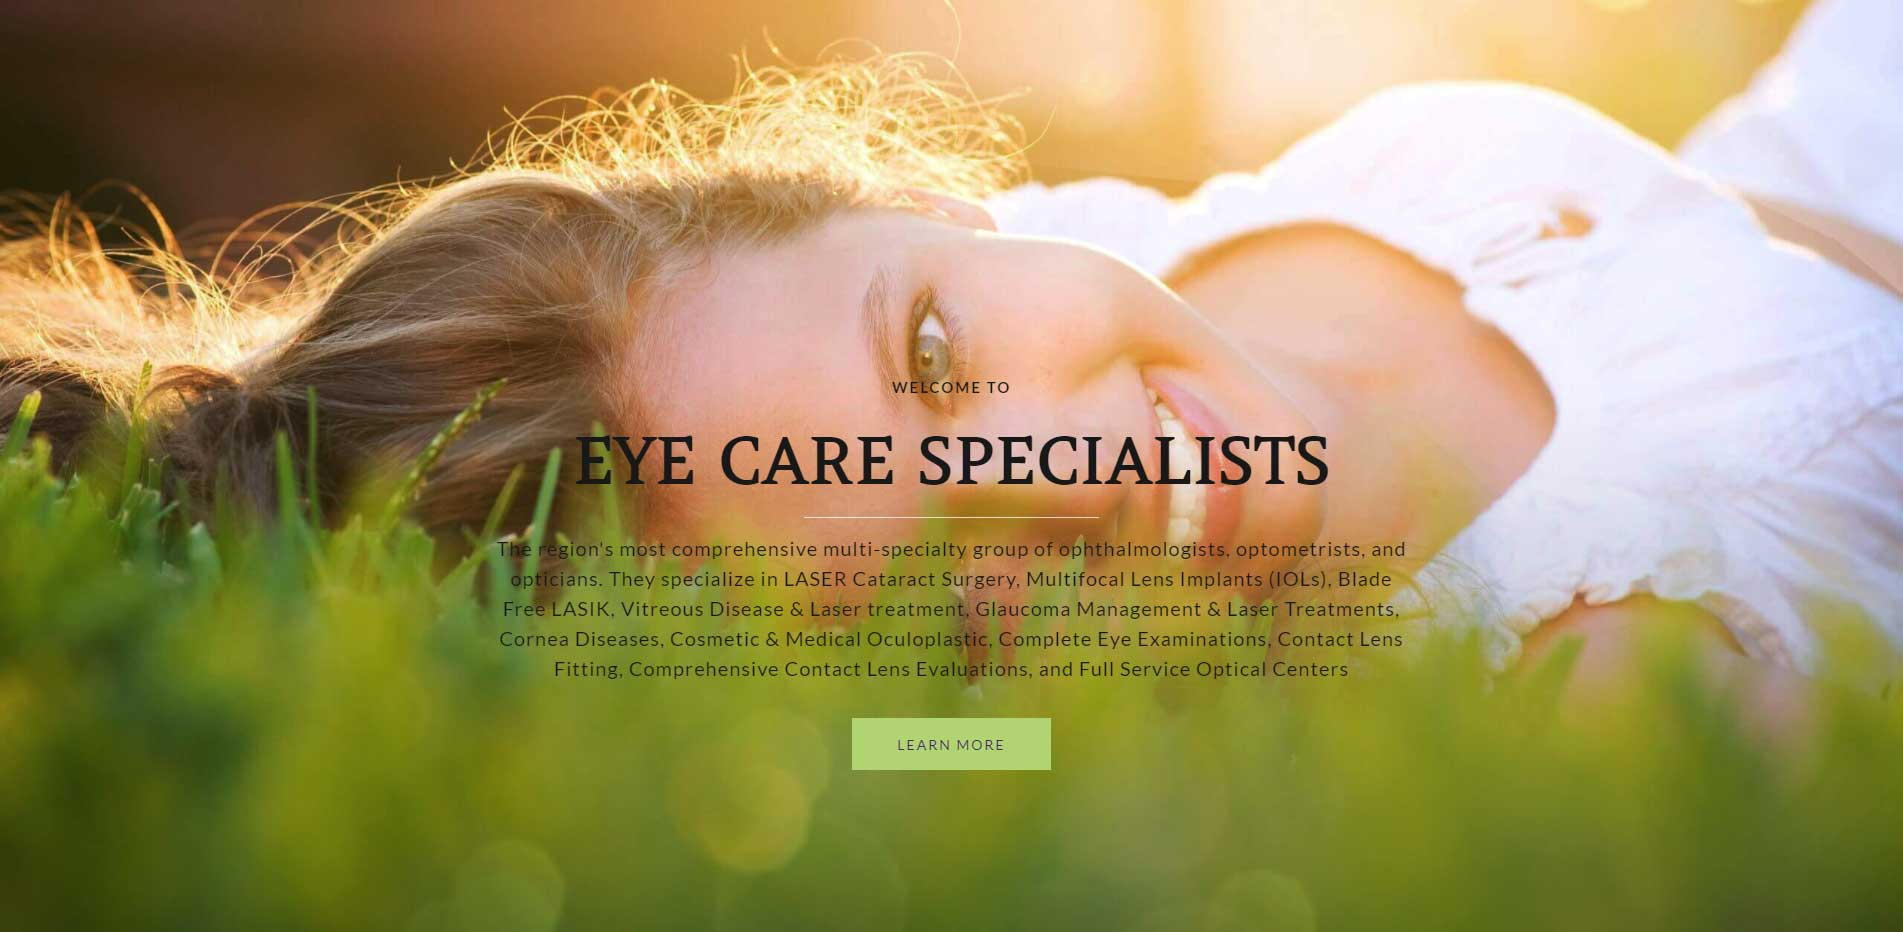 Welcome to The Eye Care Specialists